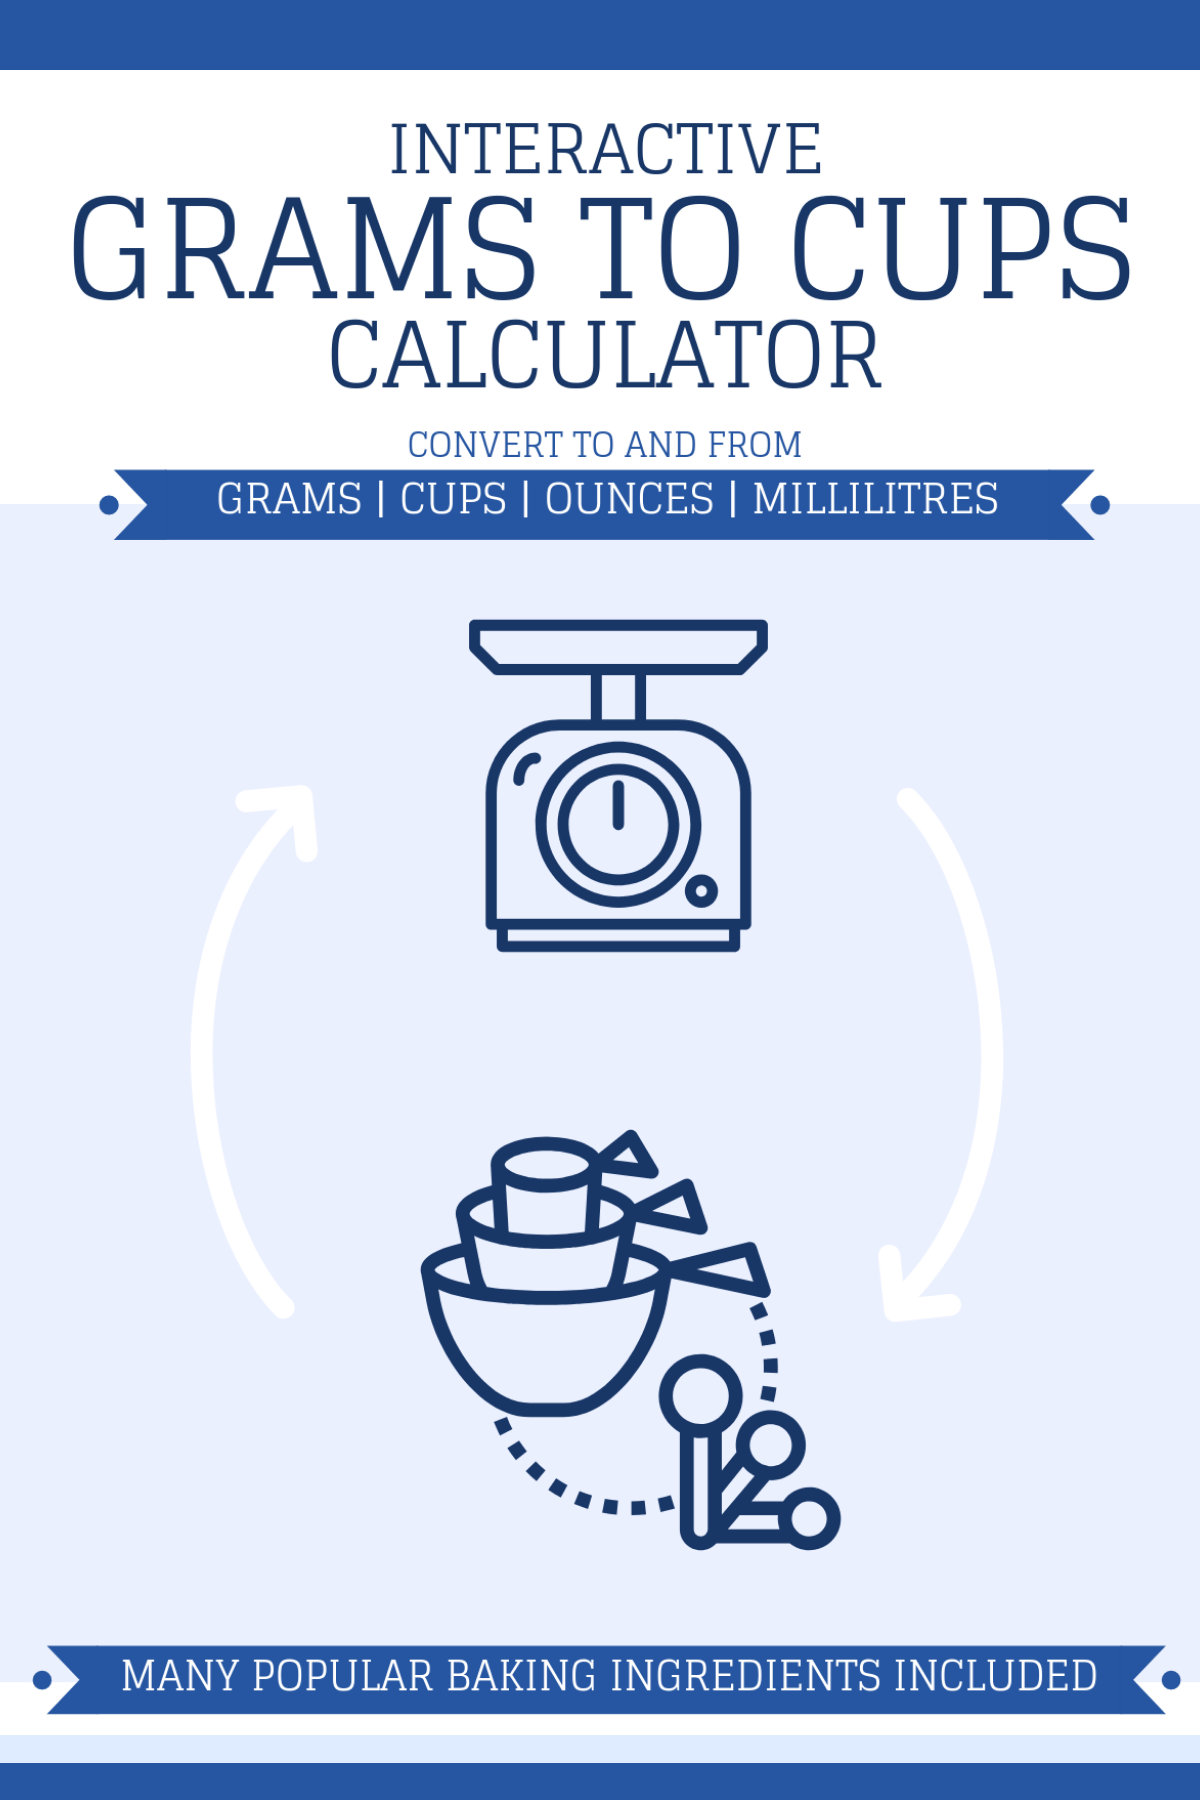 Grams to cups calculator - Easily convert between grams, cups, ounces and millilitres for many common baking ingredients.